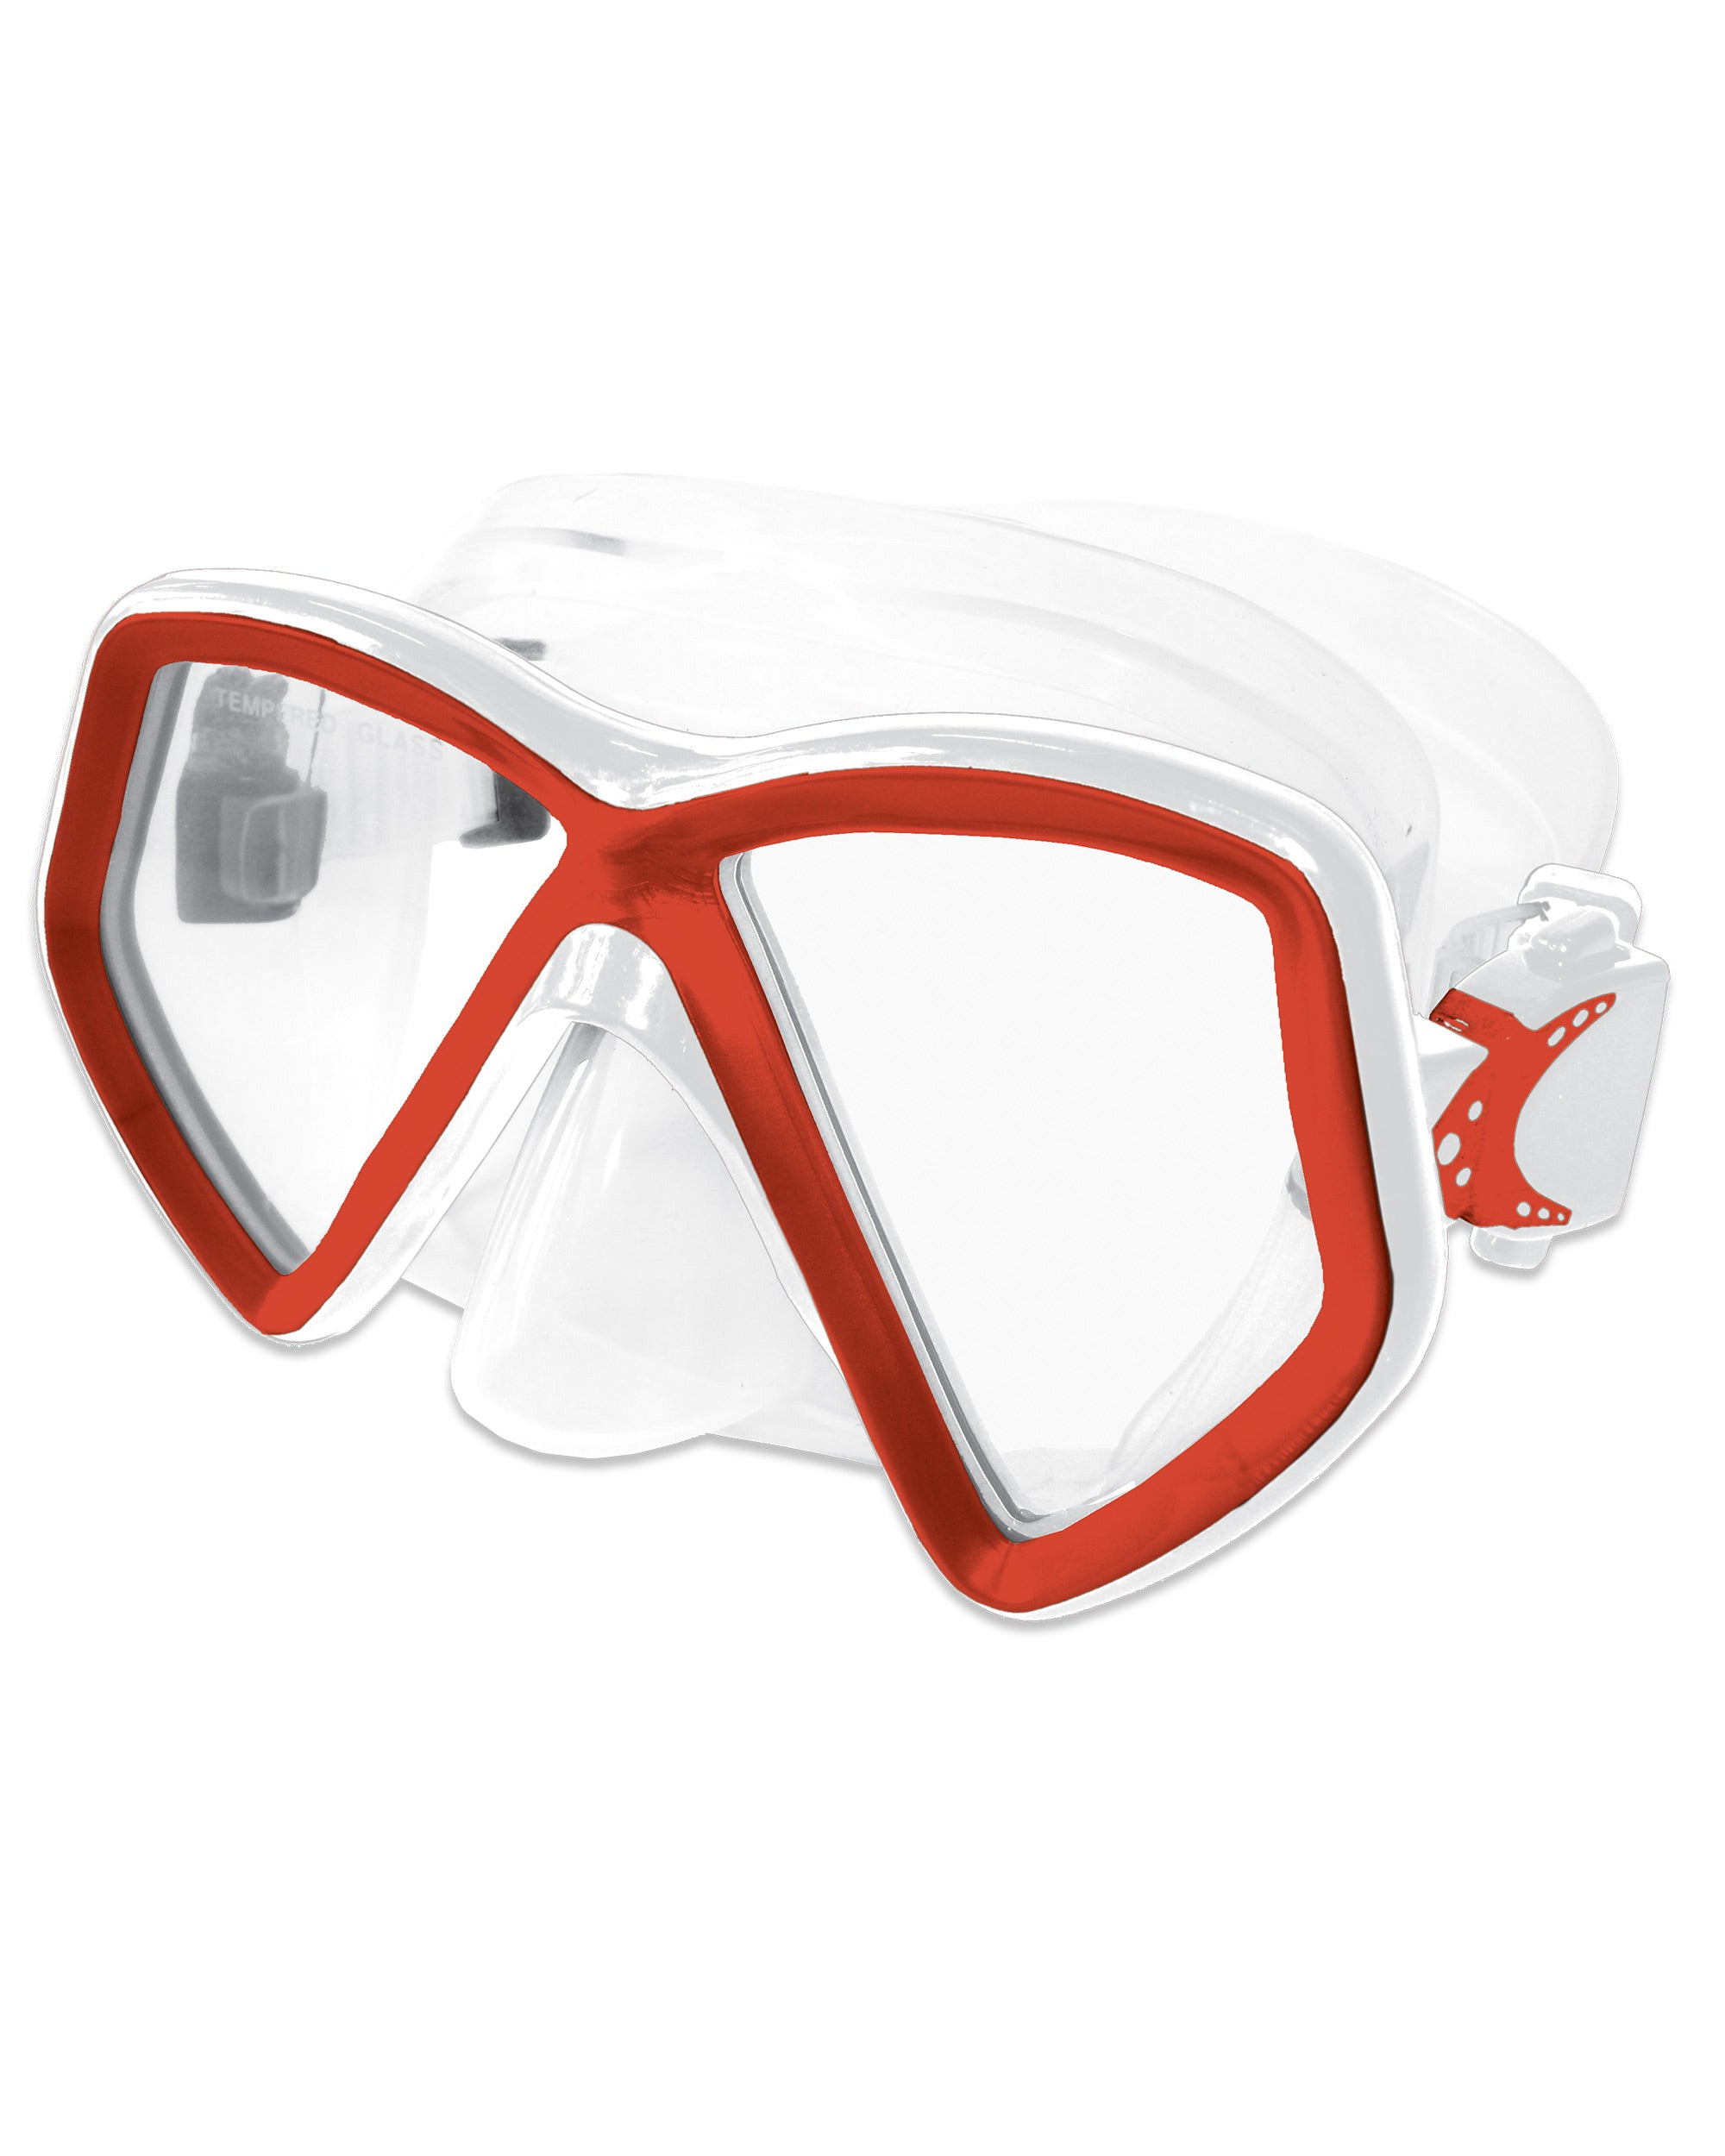 Cabo Mask - Red/White